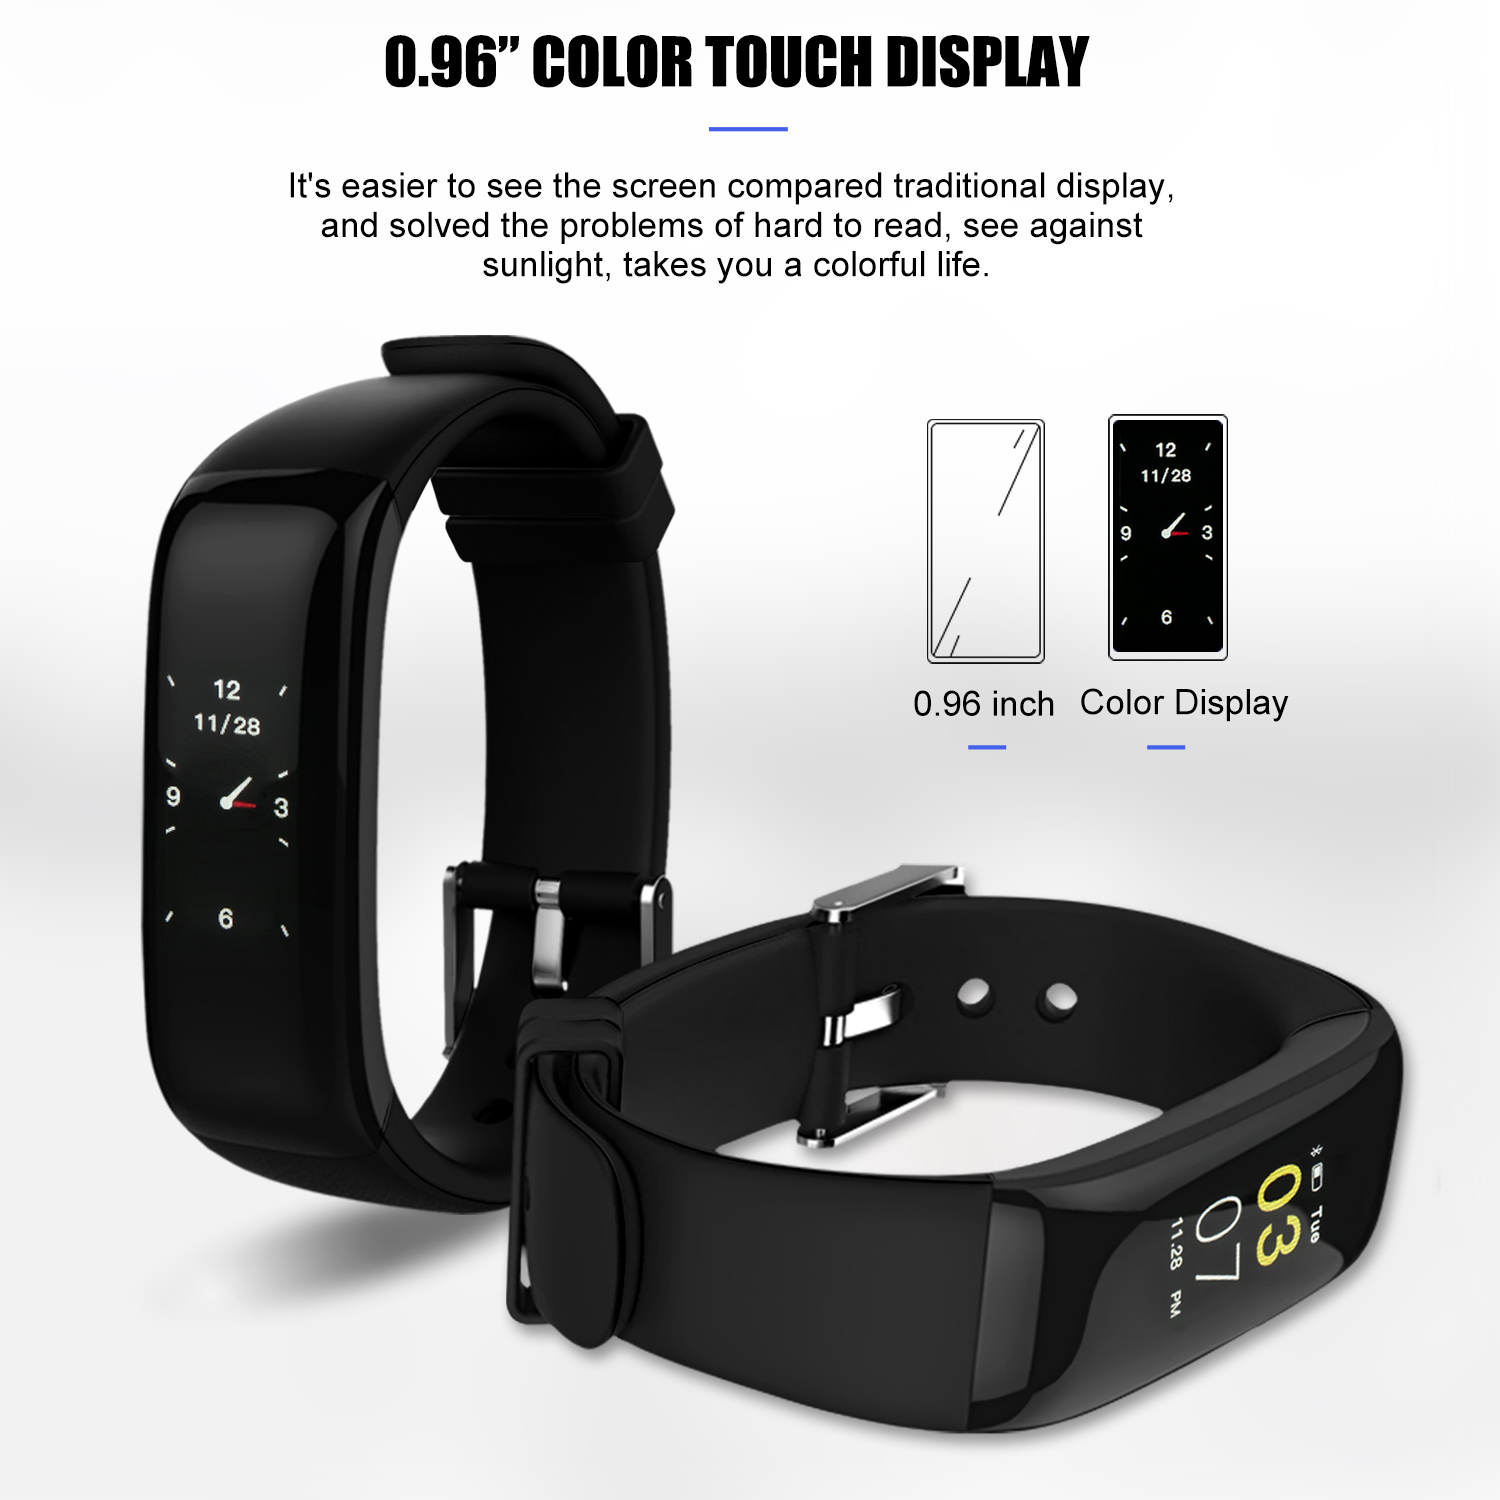 heart tracker watches tracking wristband online fitbit rsp rate fitness pdp buyfitbit and main black at small silver charge